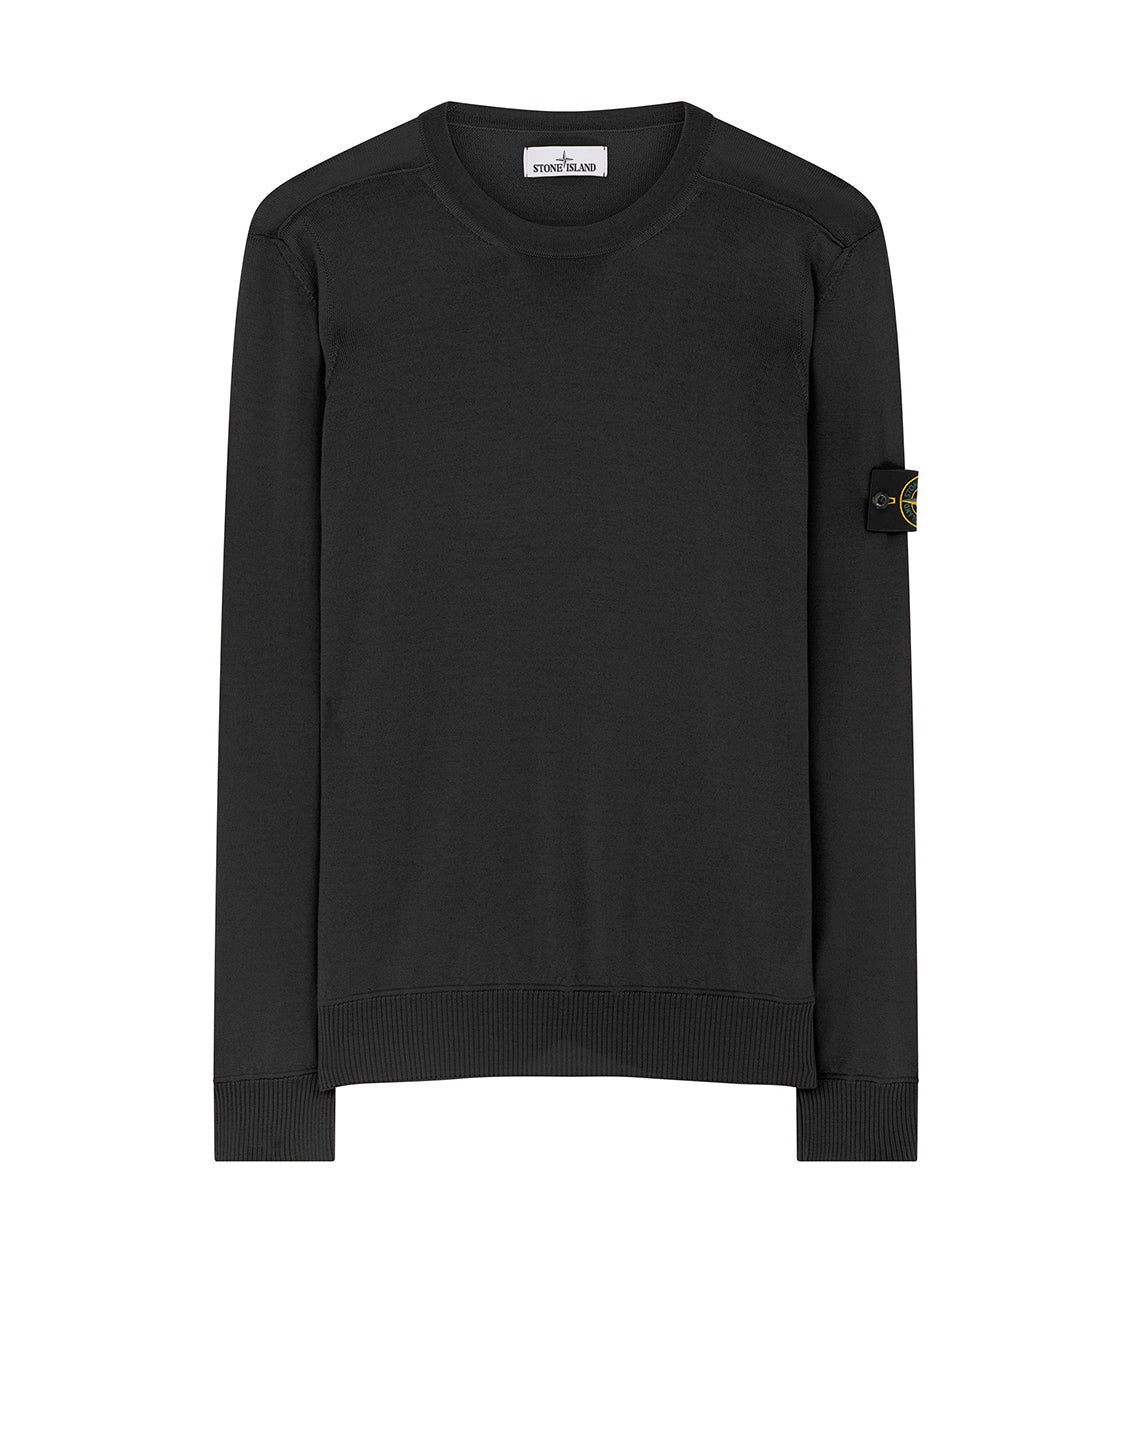 526C4 Crewneck Knit in Dark Forest